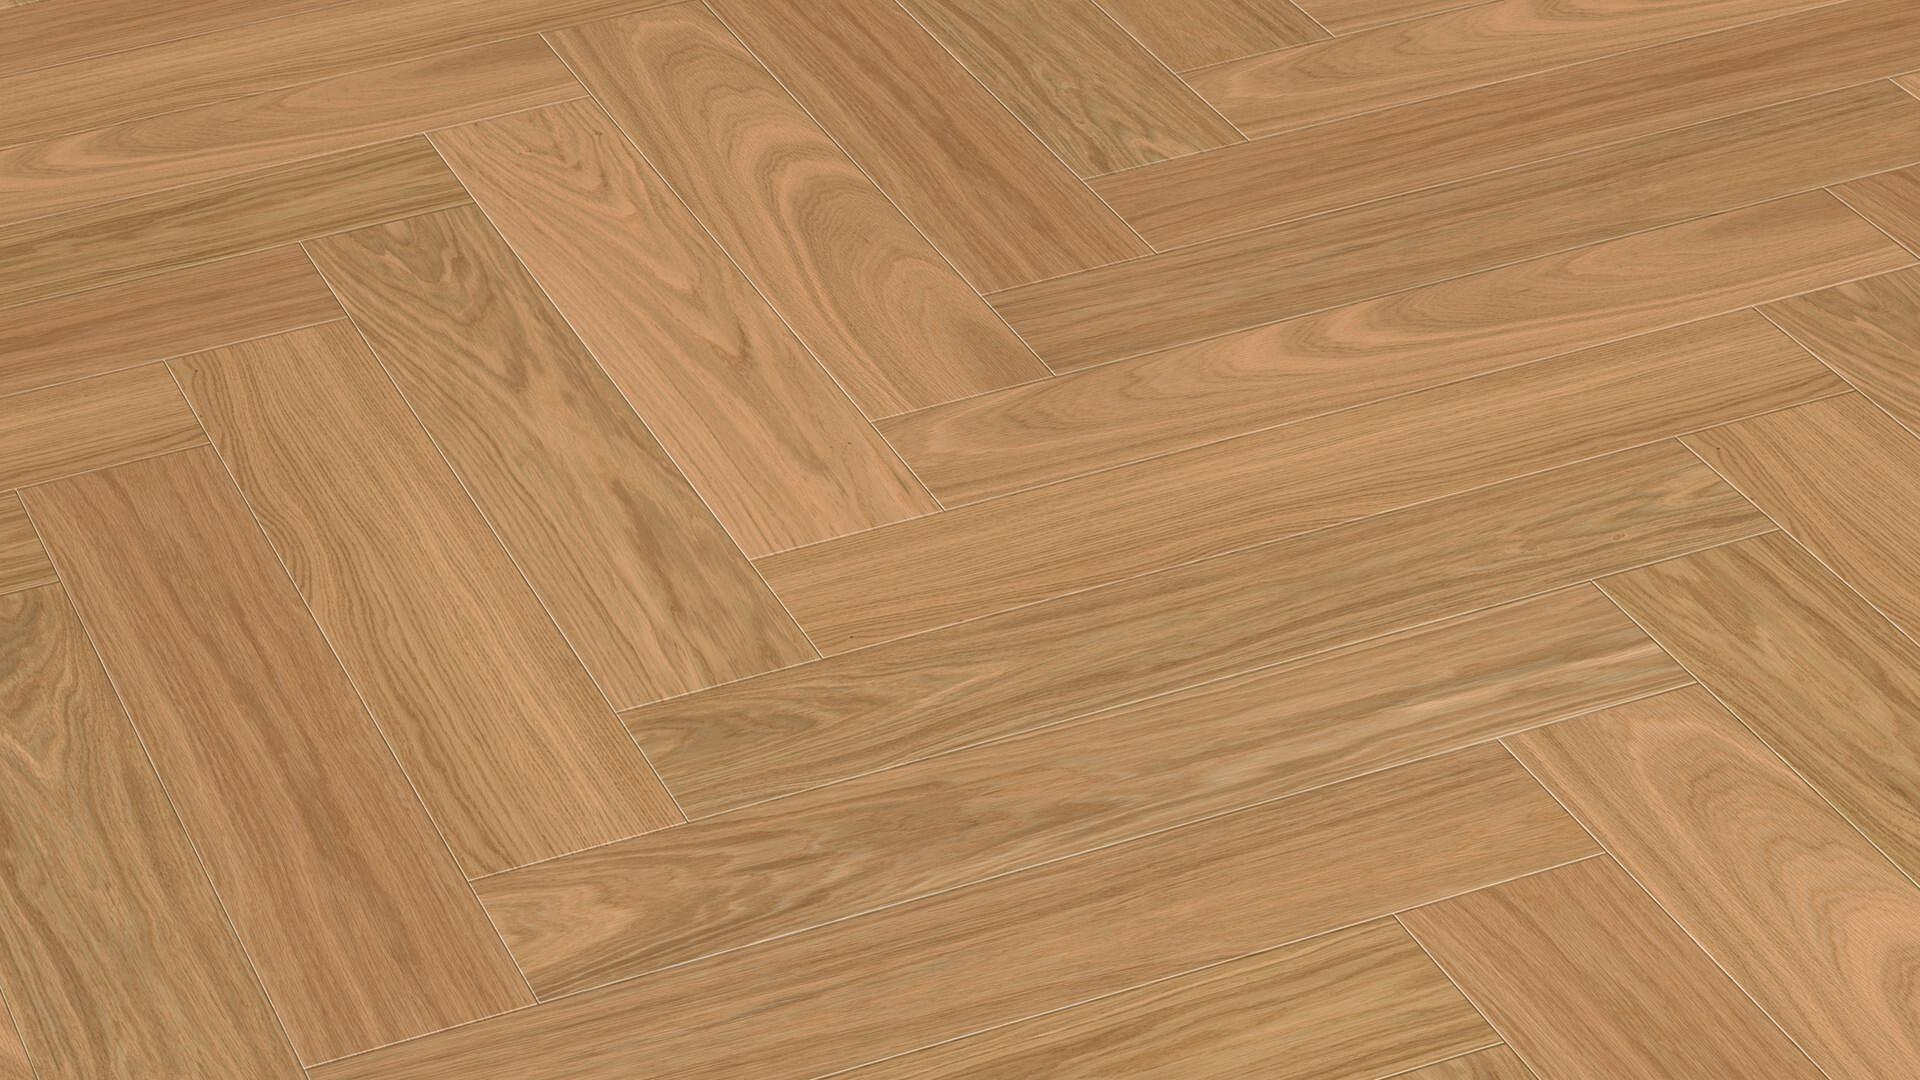 Parquet MeisterParquet. longlife PS 500 Roble armónico 8027